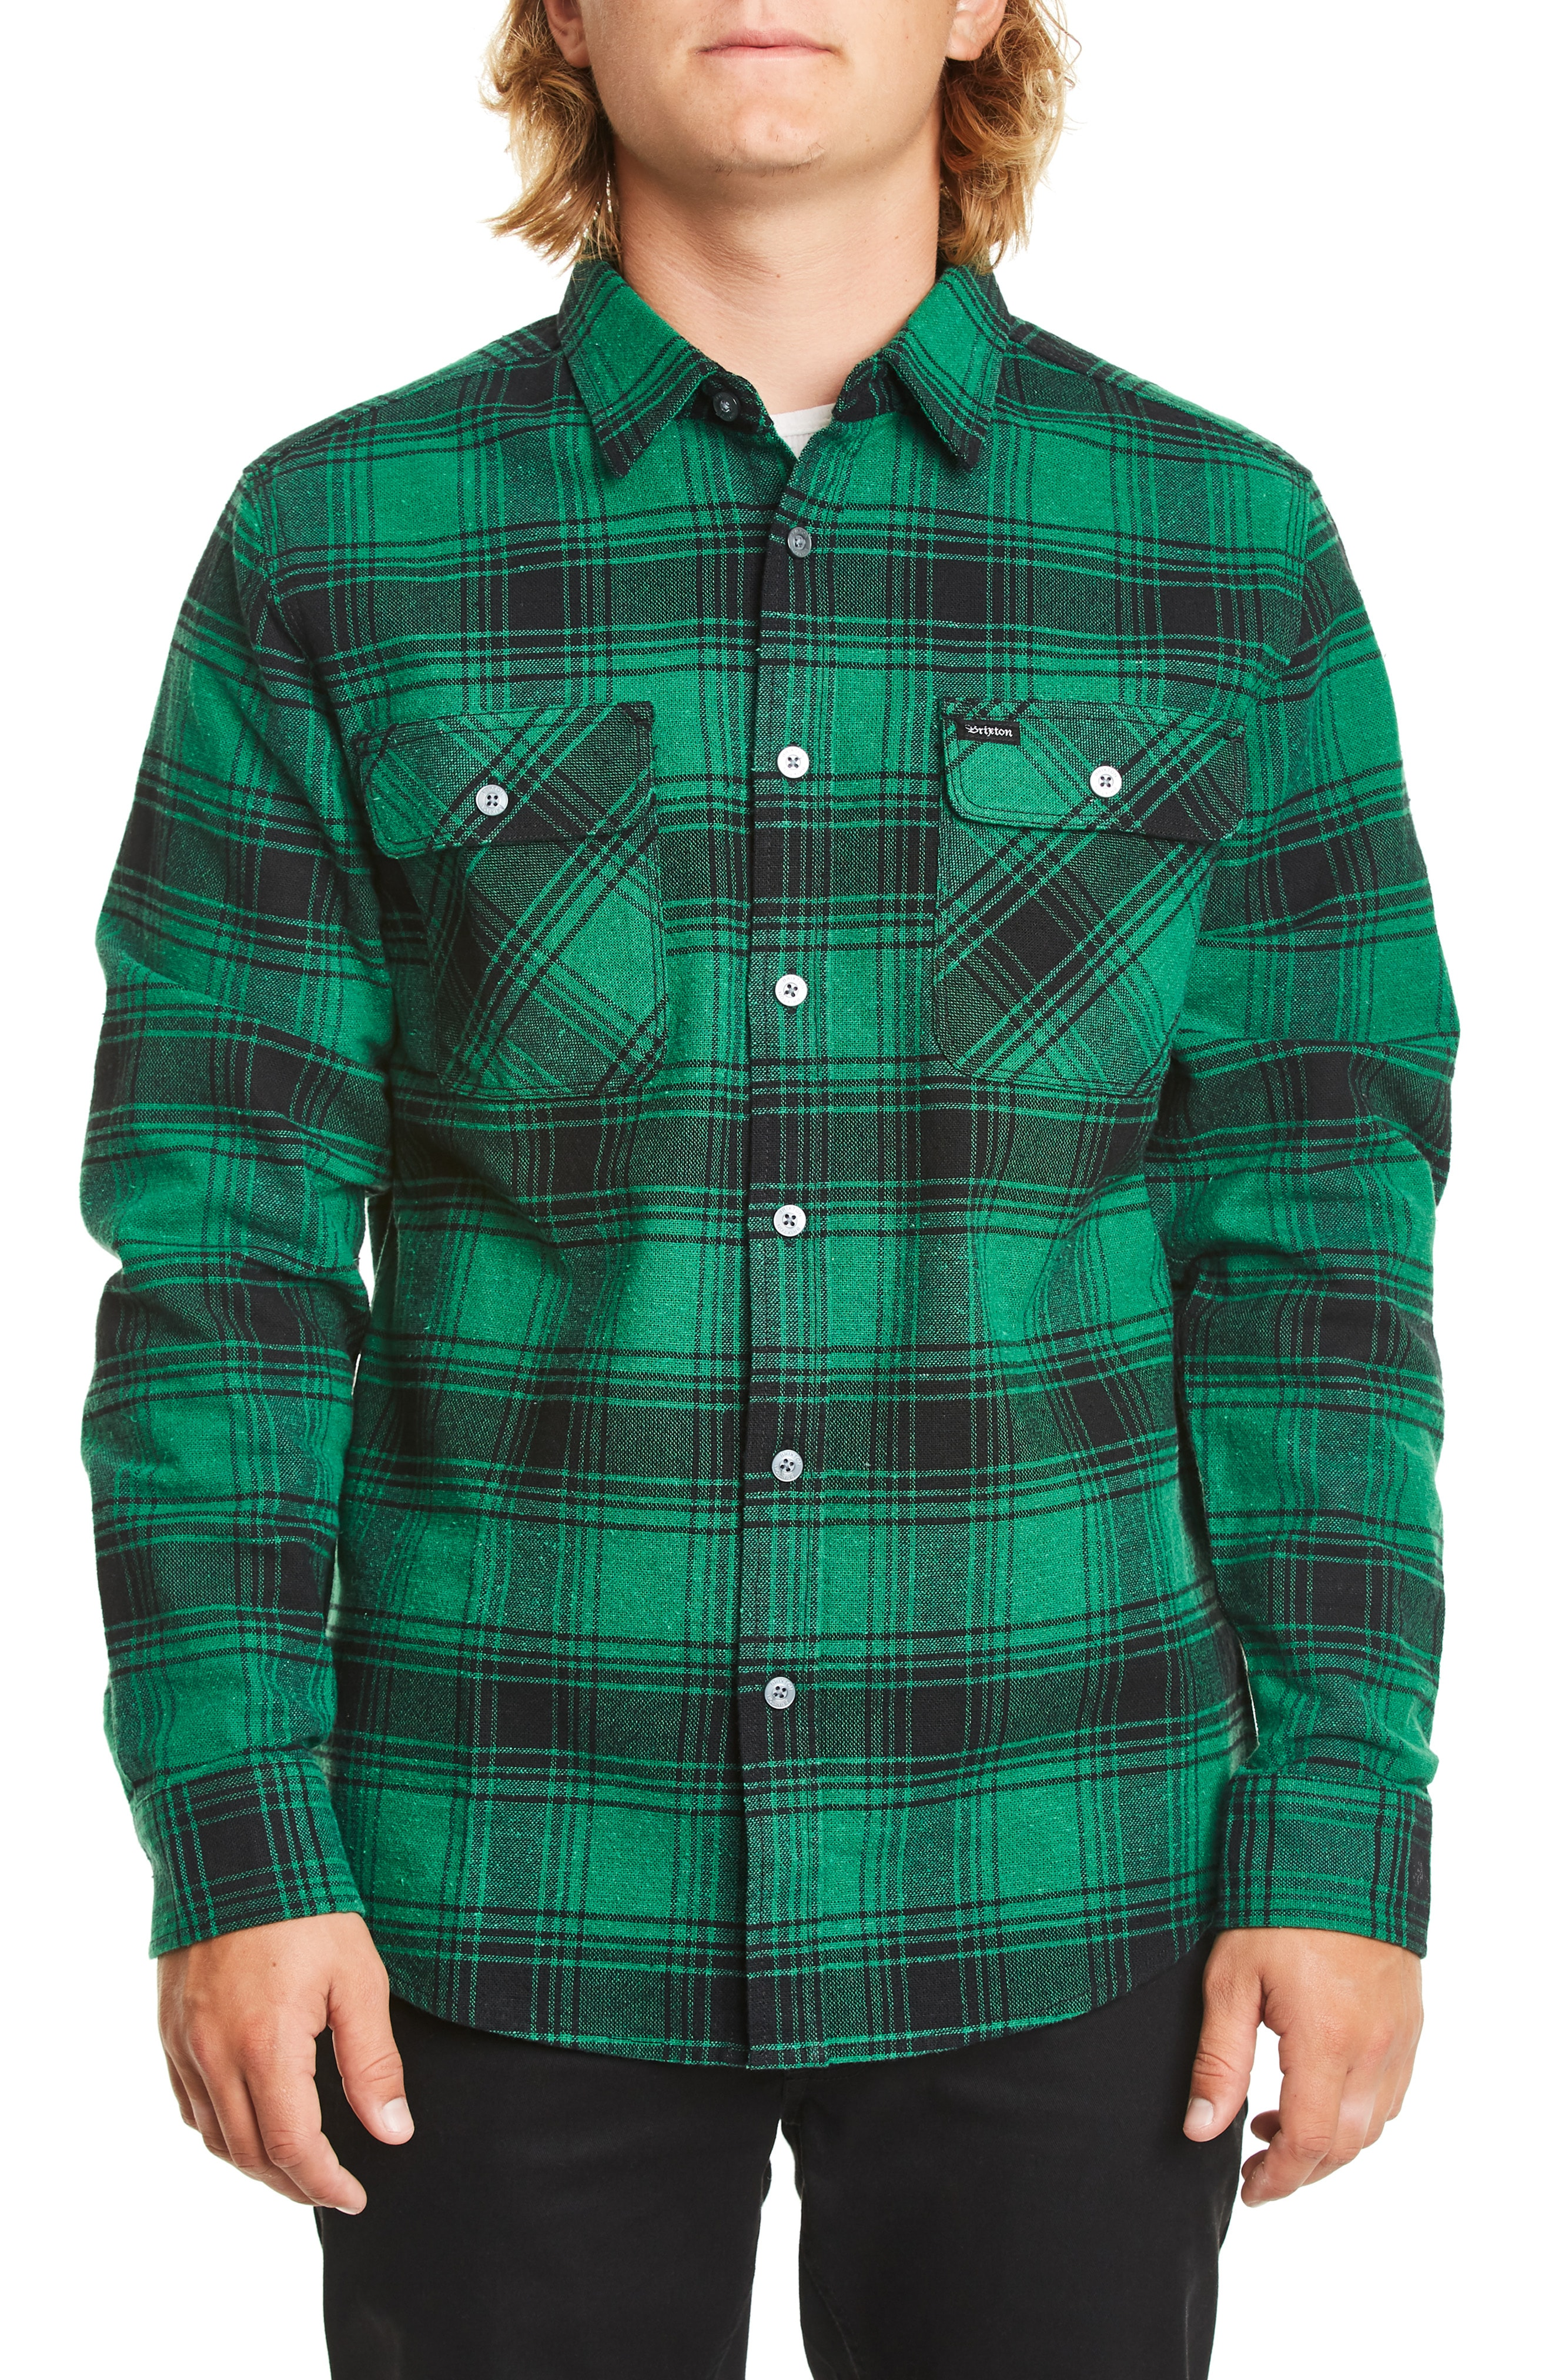 Men's Green Shirts | Nordstrom